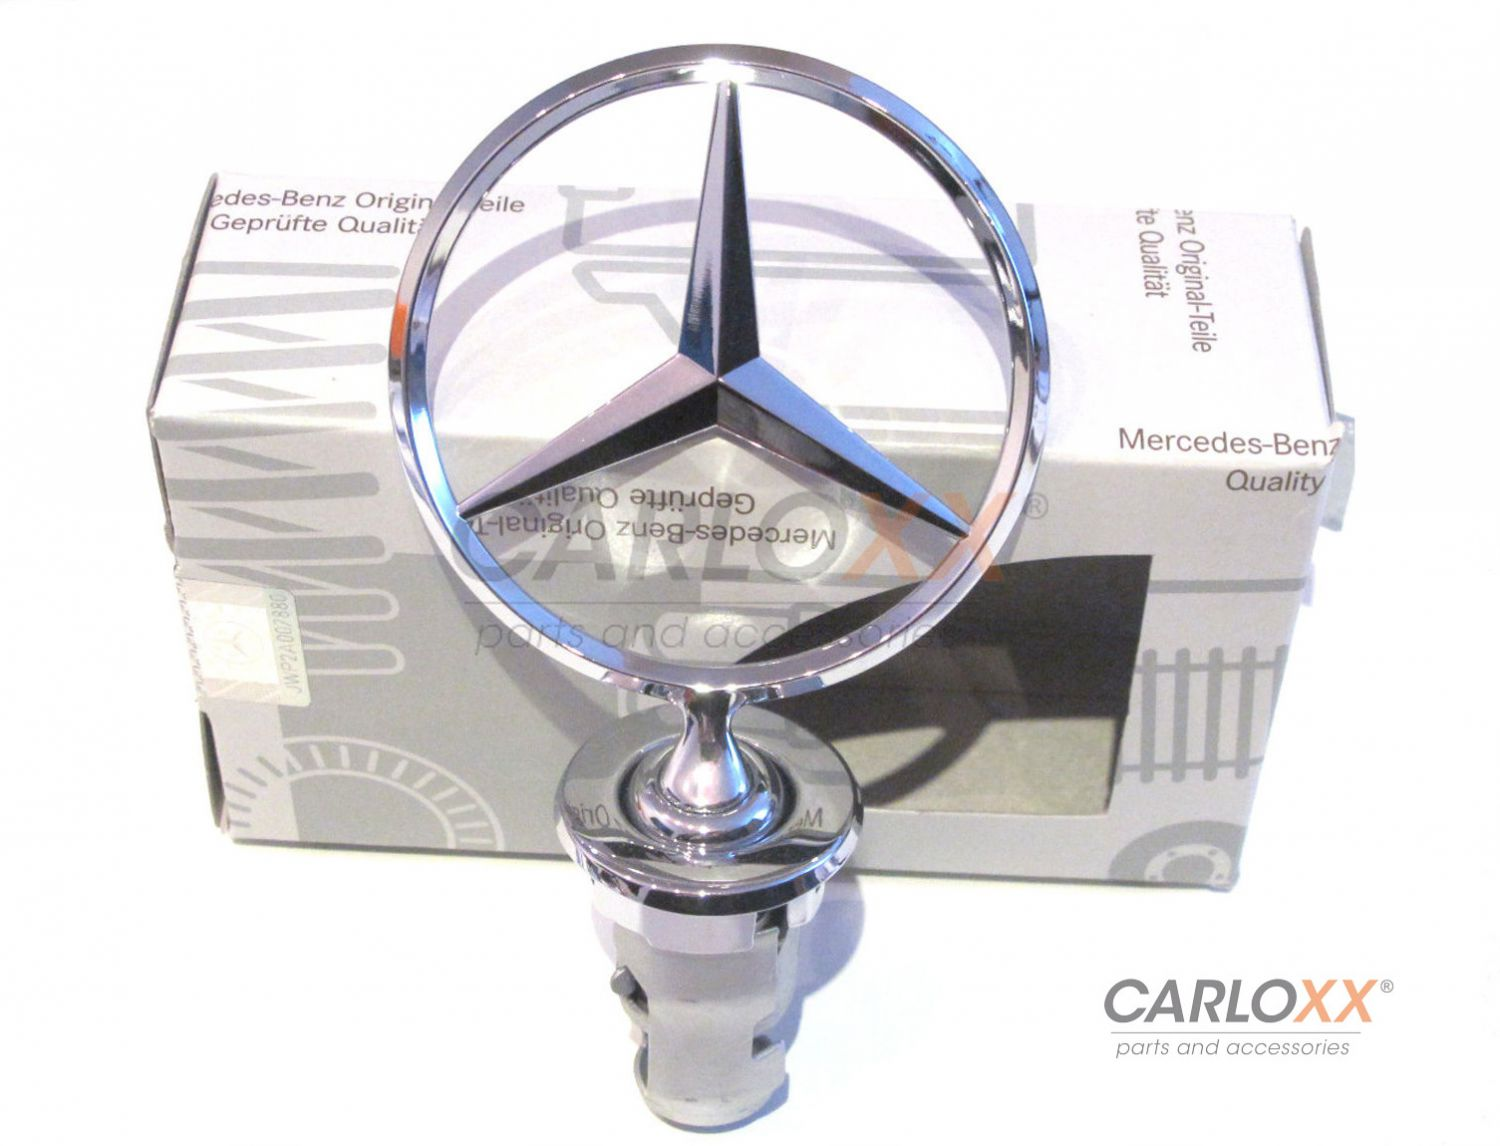 Mercedes benz bonnet stars emblem w126 v126 s class for Mercedes benz bonnet badge